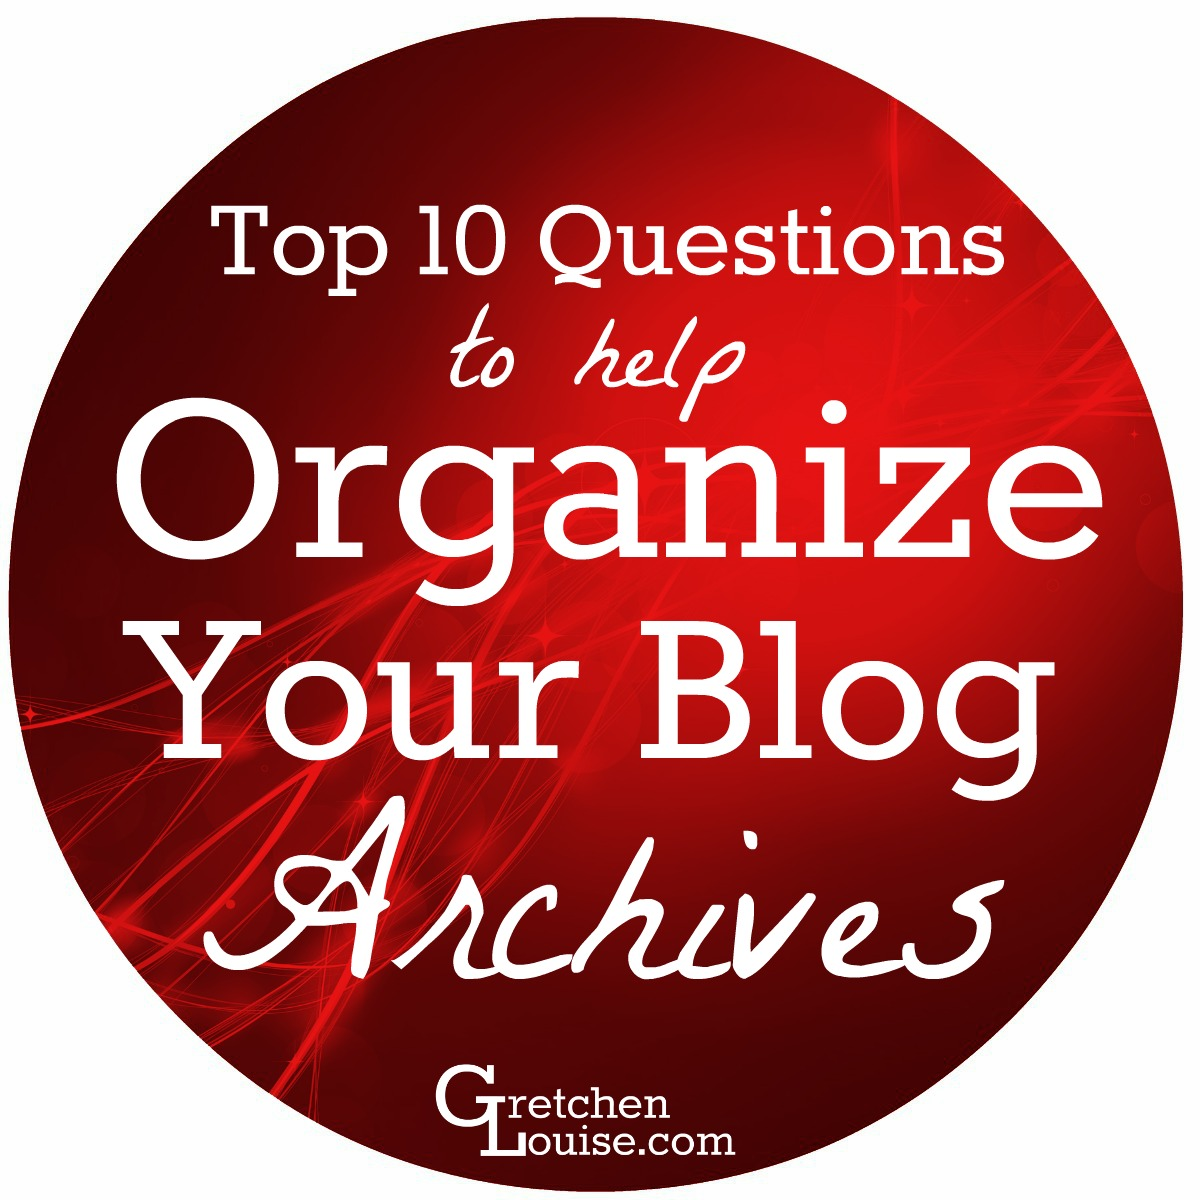 Top 10 Questions to Help Organize Your Blog Archives